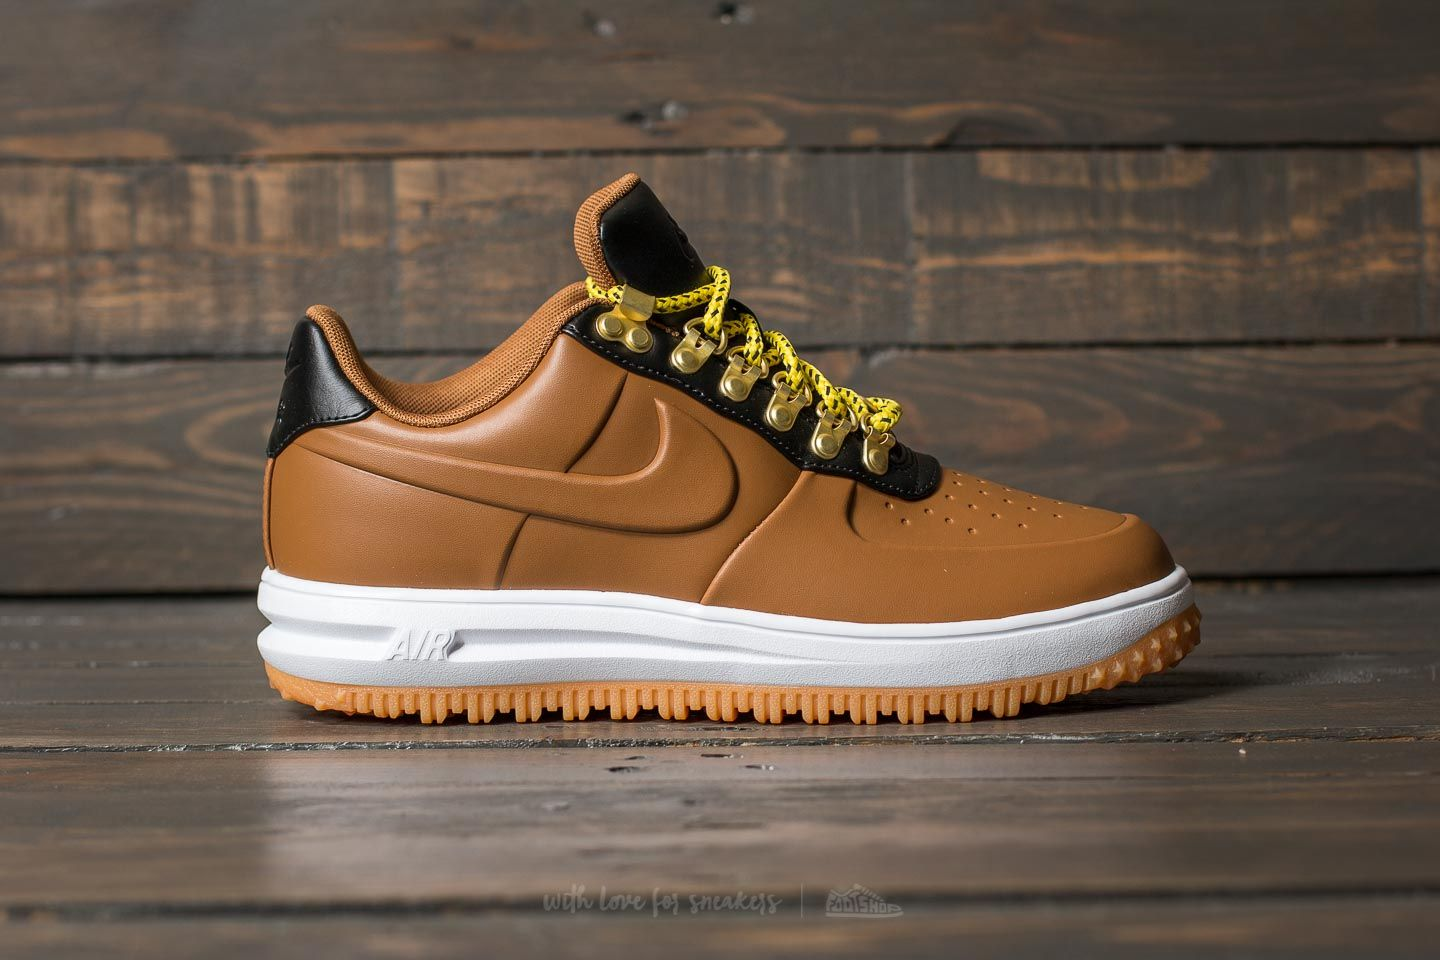 1cc86ac3ab Nike Lunar Force 1 Duckboot Low Ale Brown/ Ale Brown-Black | Footshop